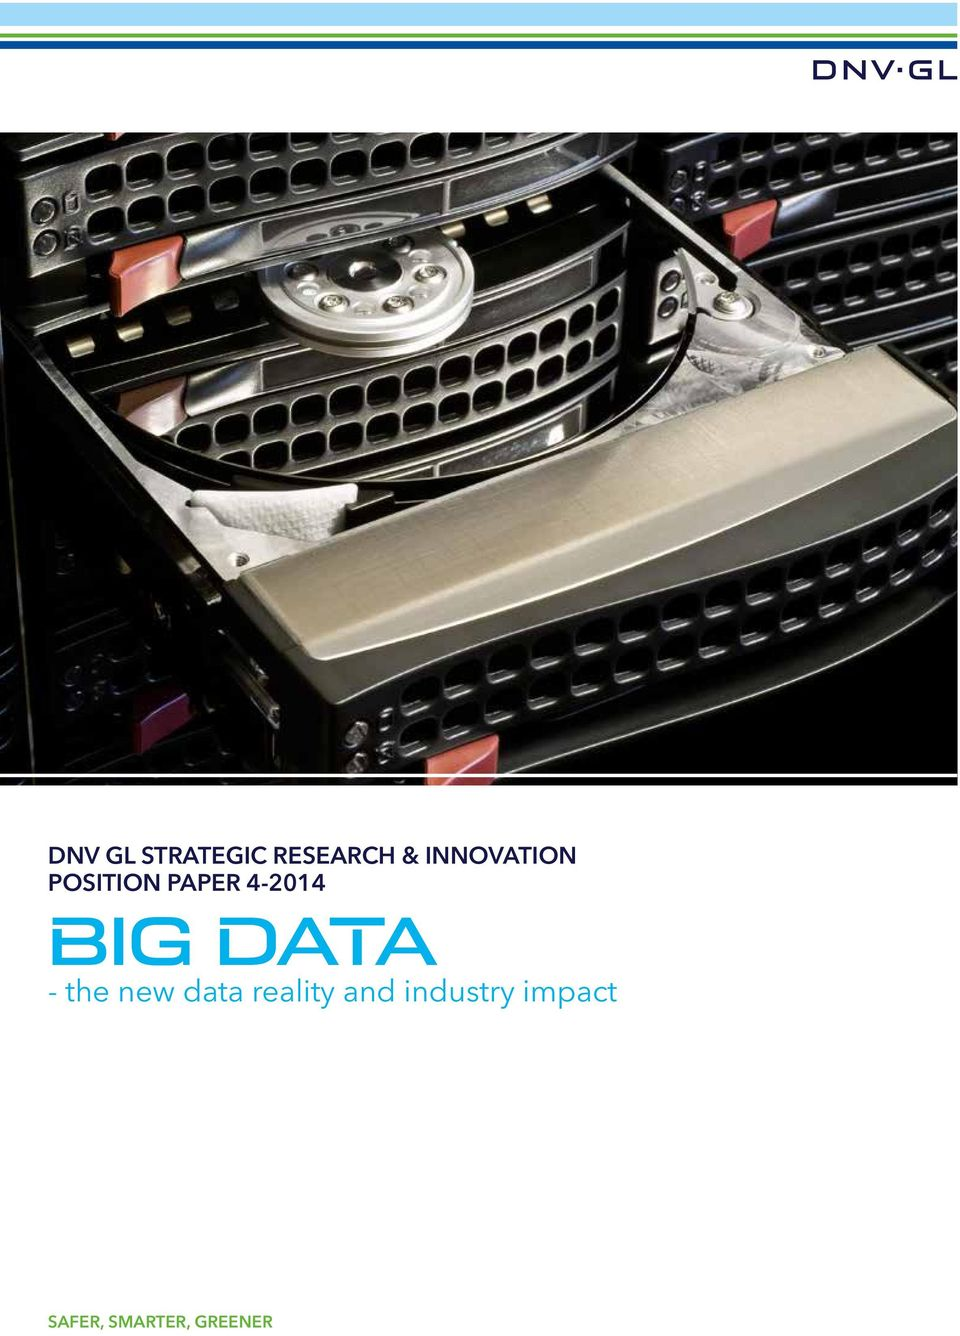 BIG DATA - the new data reality